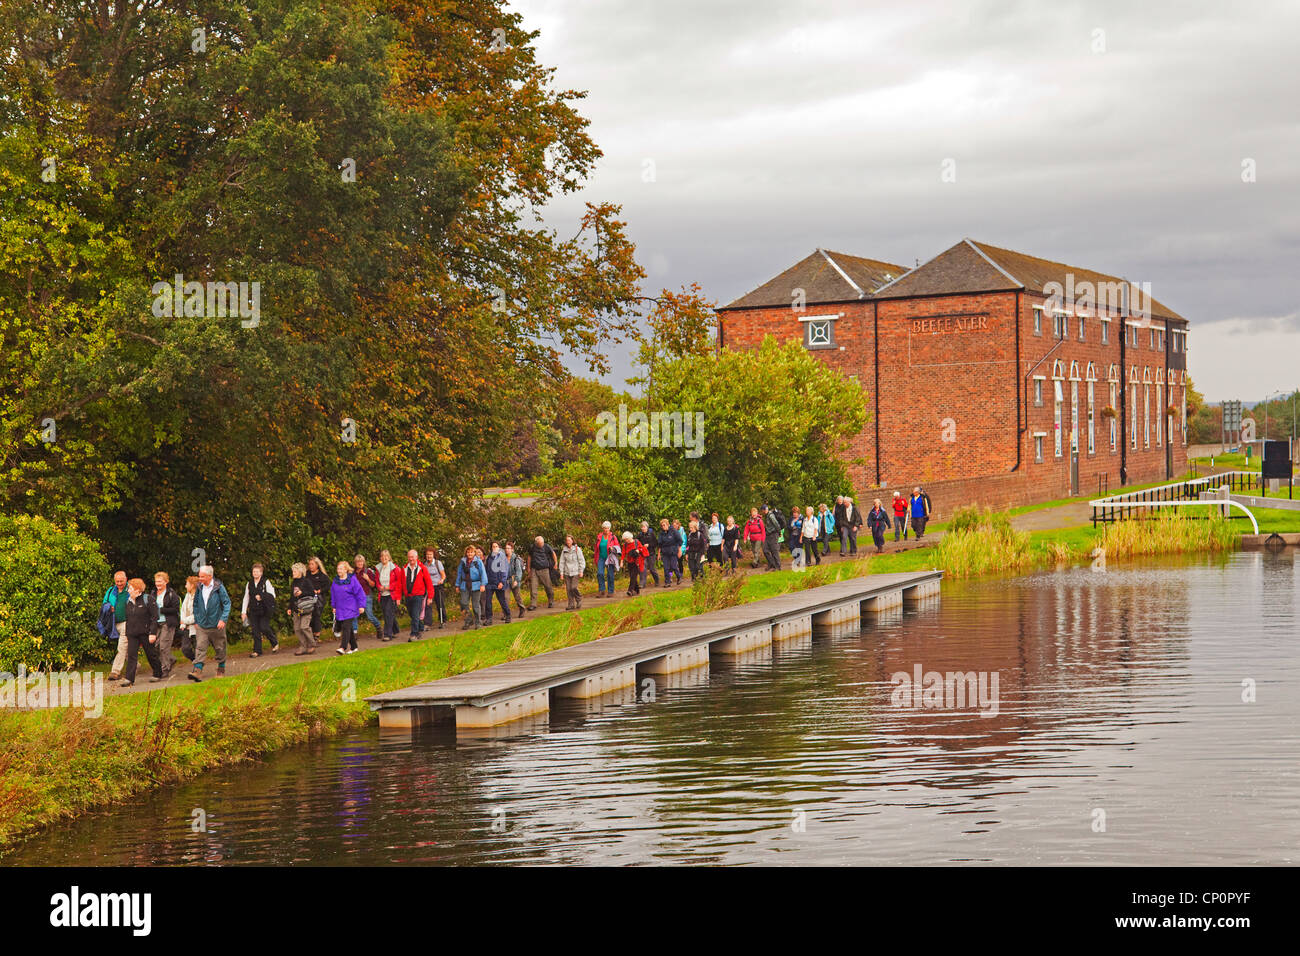 A Rambling Club on the Forth and Clyde Canal at Falkirk - Stock Image